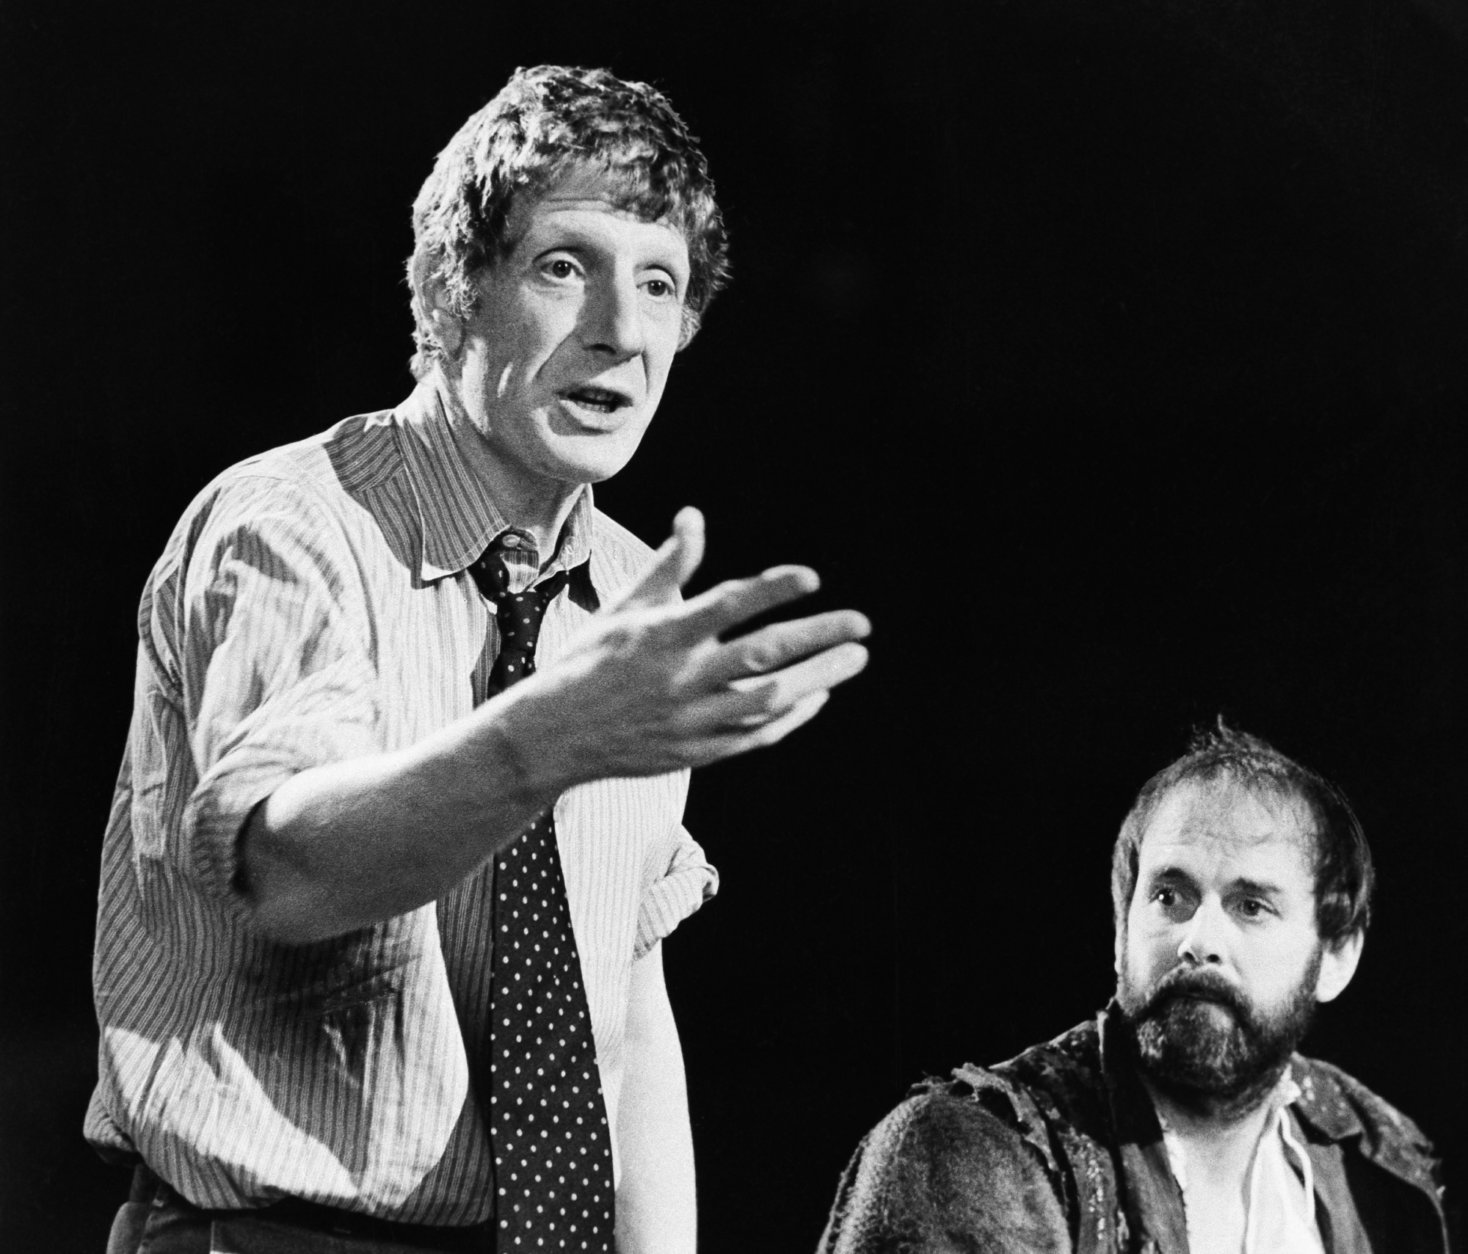 """FILE - In this Dec. 12, 1980 file photo, Jonathan Miller, left, directs Shakespeare's """"Taming Of The Shrew"""" with actor John Cleese, right. The family of theater director and presenter Jonathan Miller says the star of the """"Beyond the Fringe'' comedy revue has died. He was 85 and had suffered from Alzheimer's disease before his death Wednesday Nov. 27, 2019. (AP Photo, File)"""